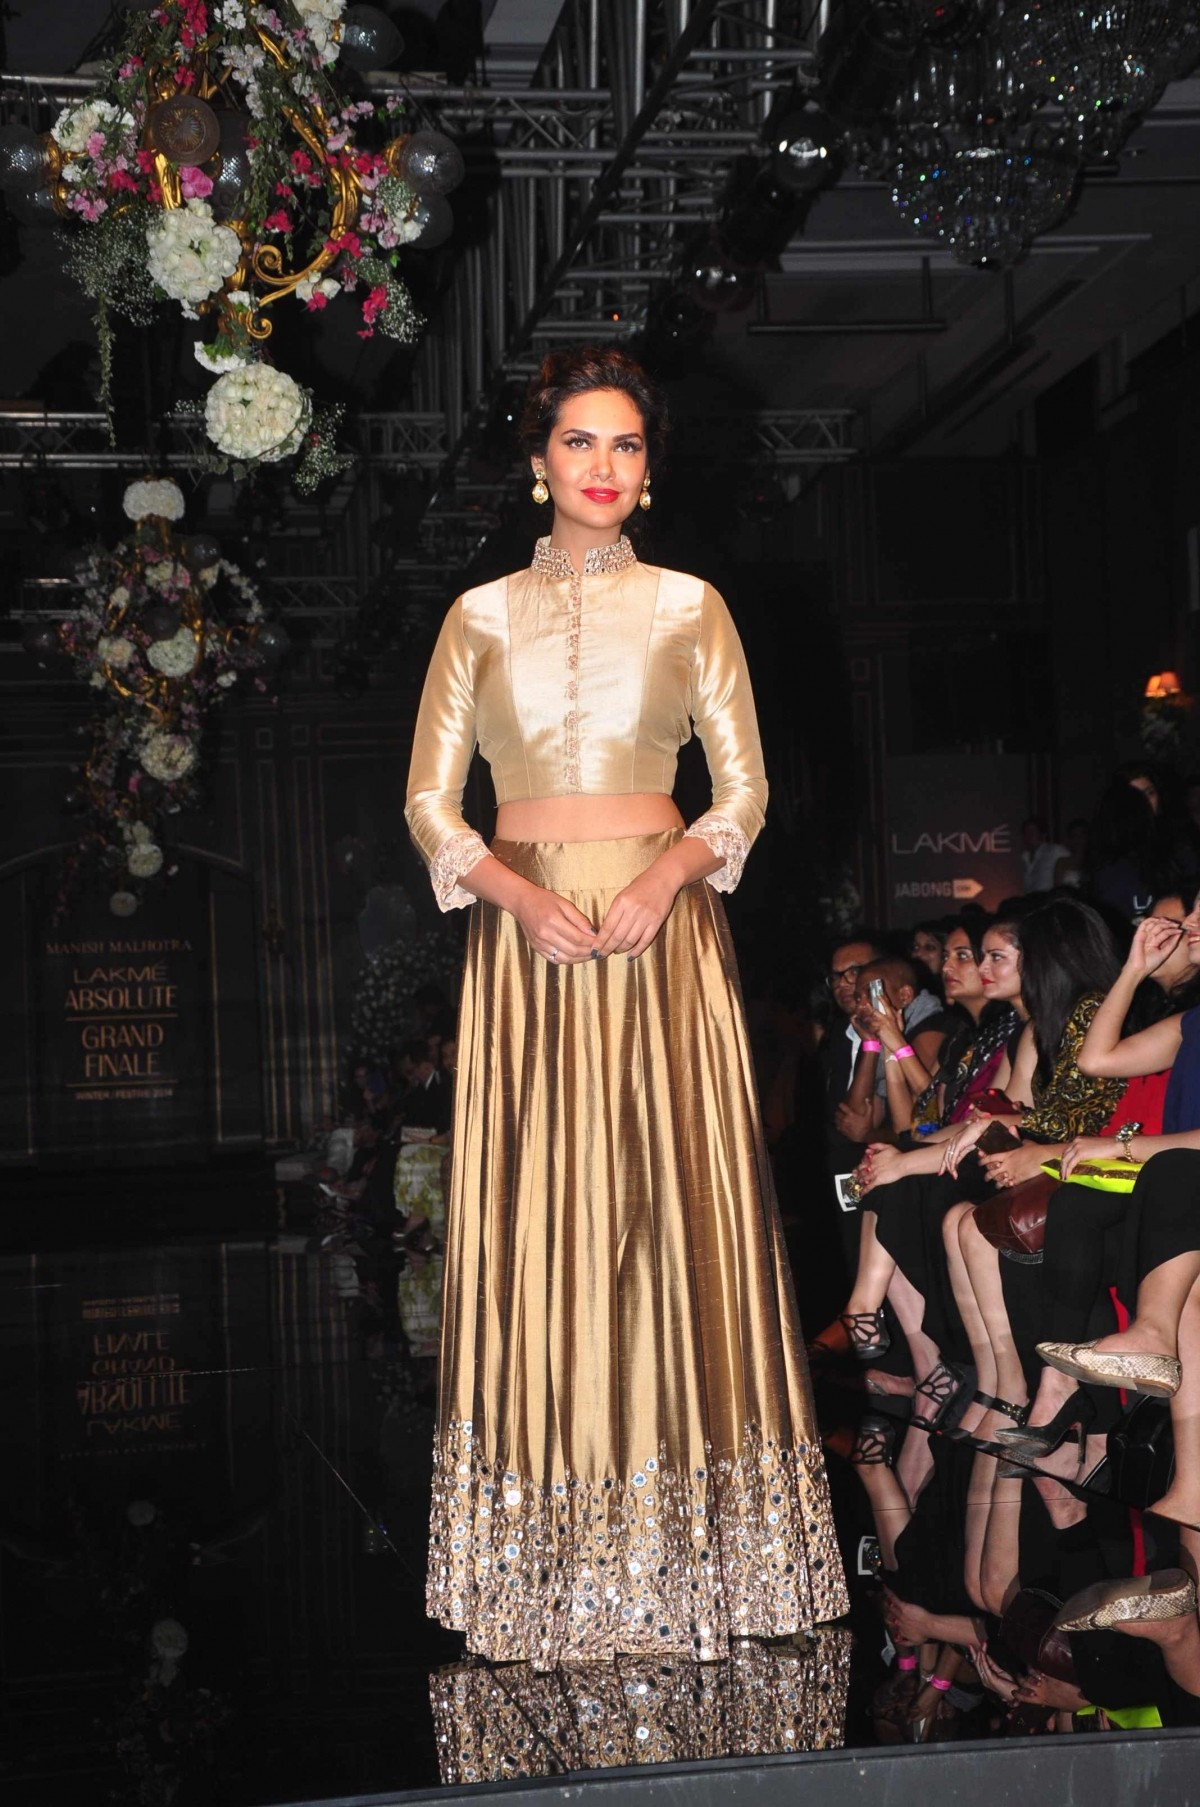 Lakme Fashion Week Grand Finale